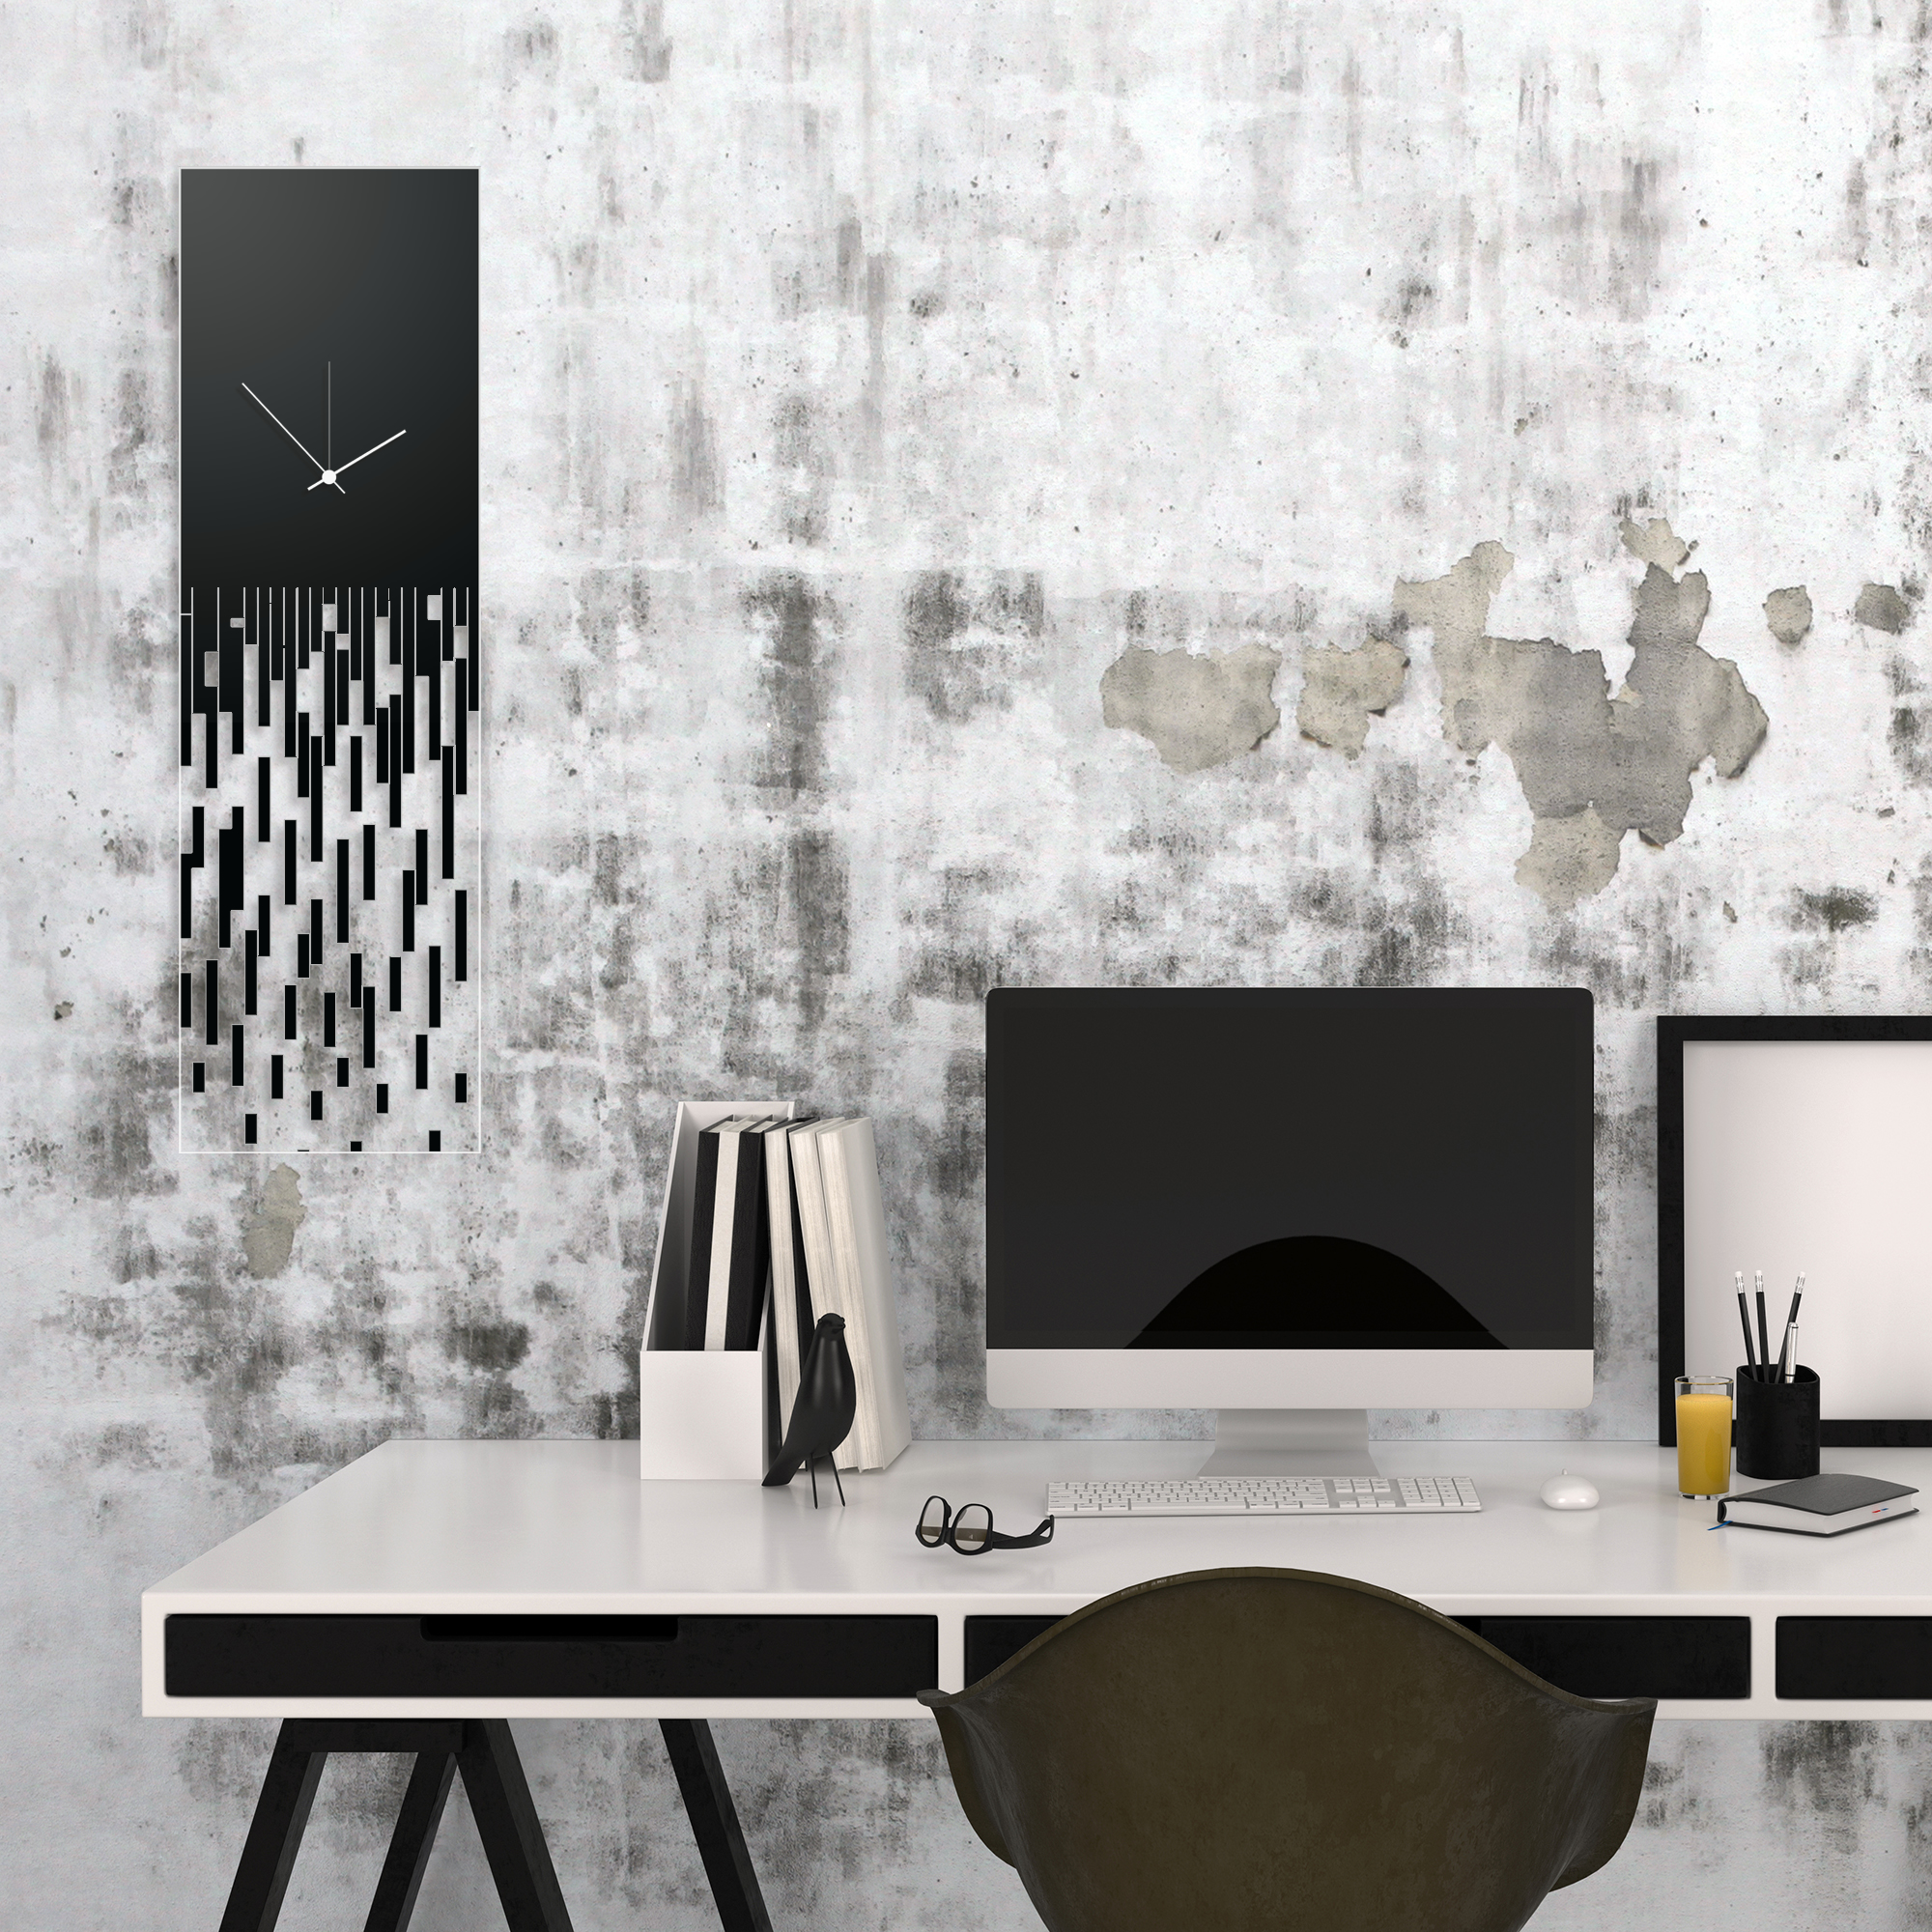 Black Pixelated Clock by Adam Schwoeppe Surreal Wall Clock on Acrylic - Alternate View 1